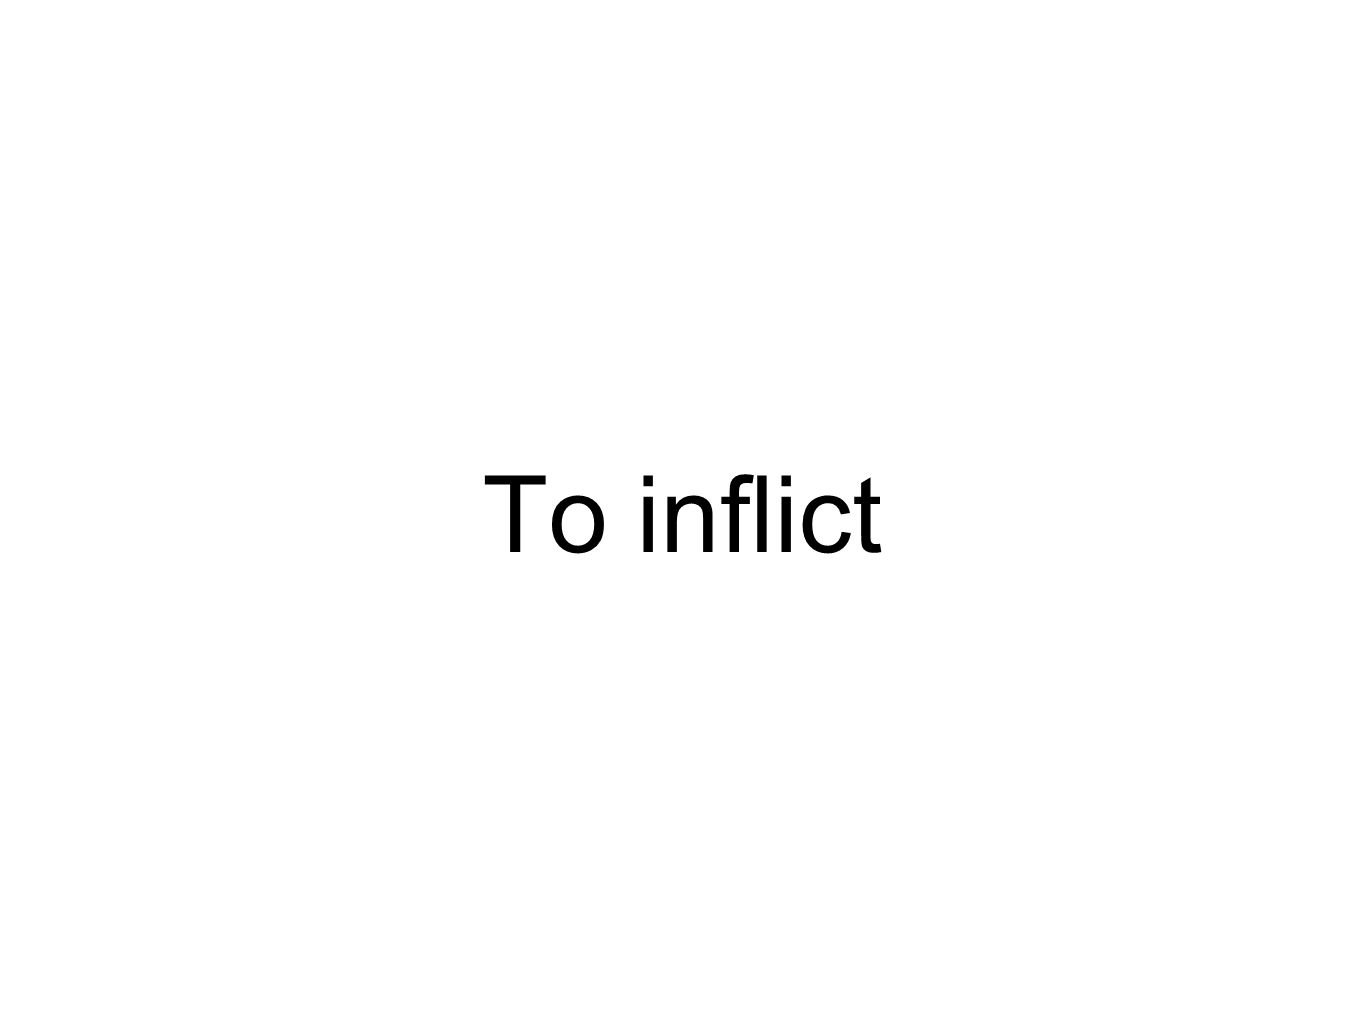 To inflict